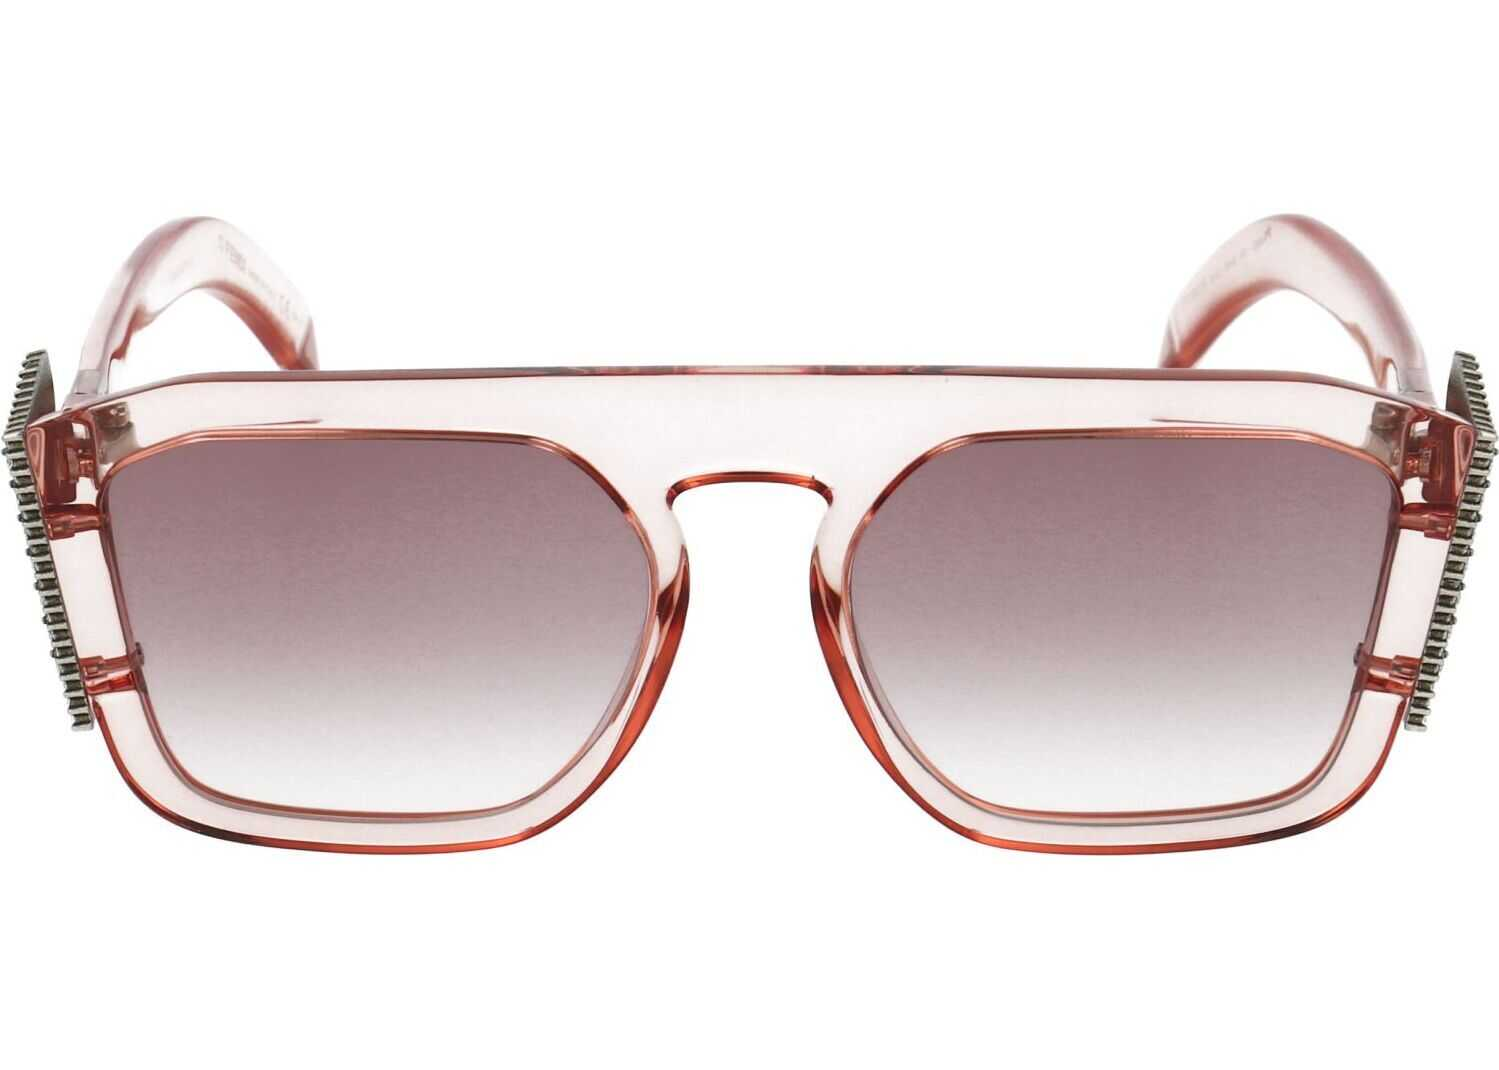 Fendi Acetate Sunglasses thumbnail